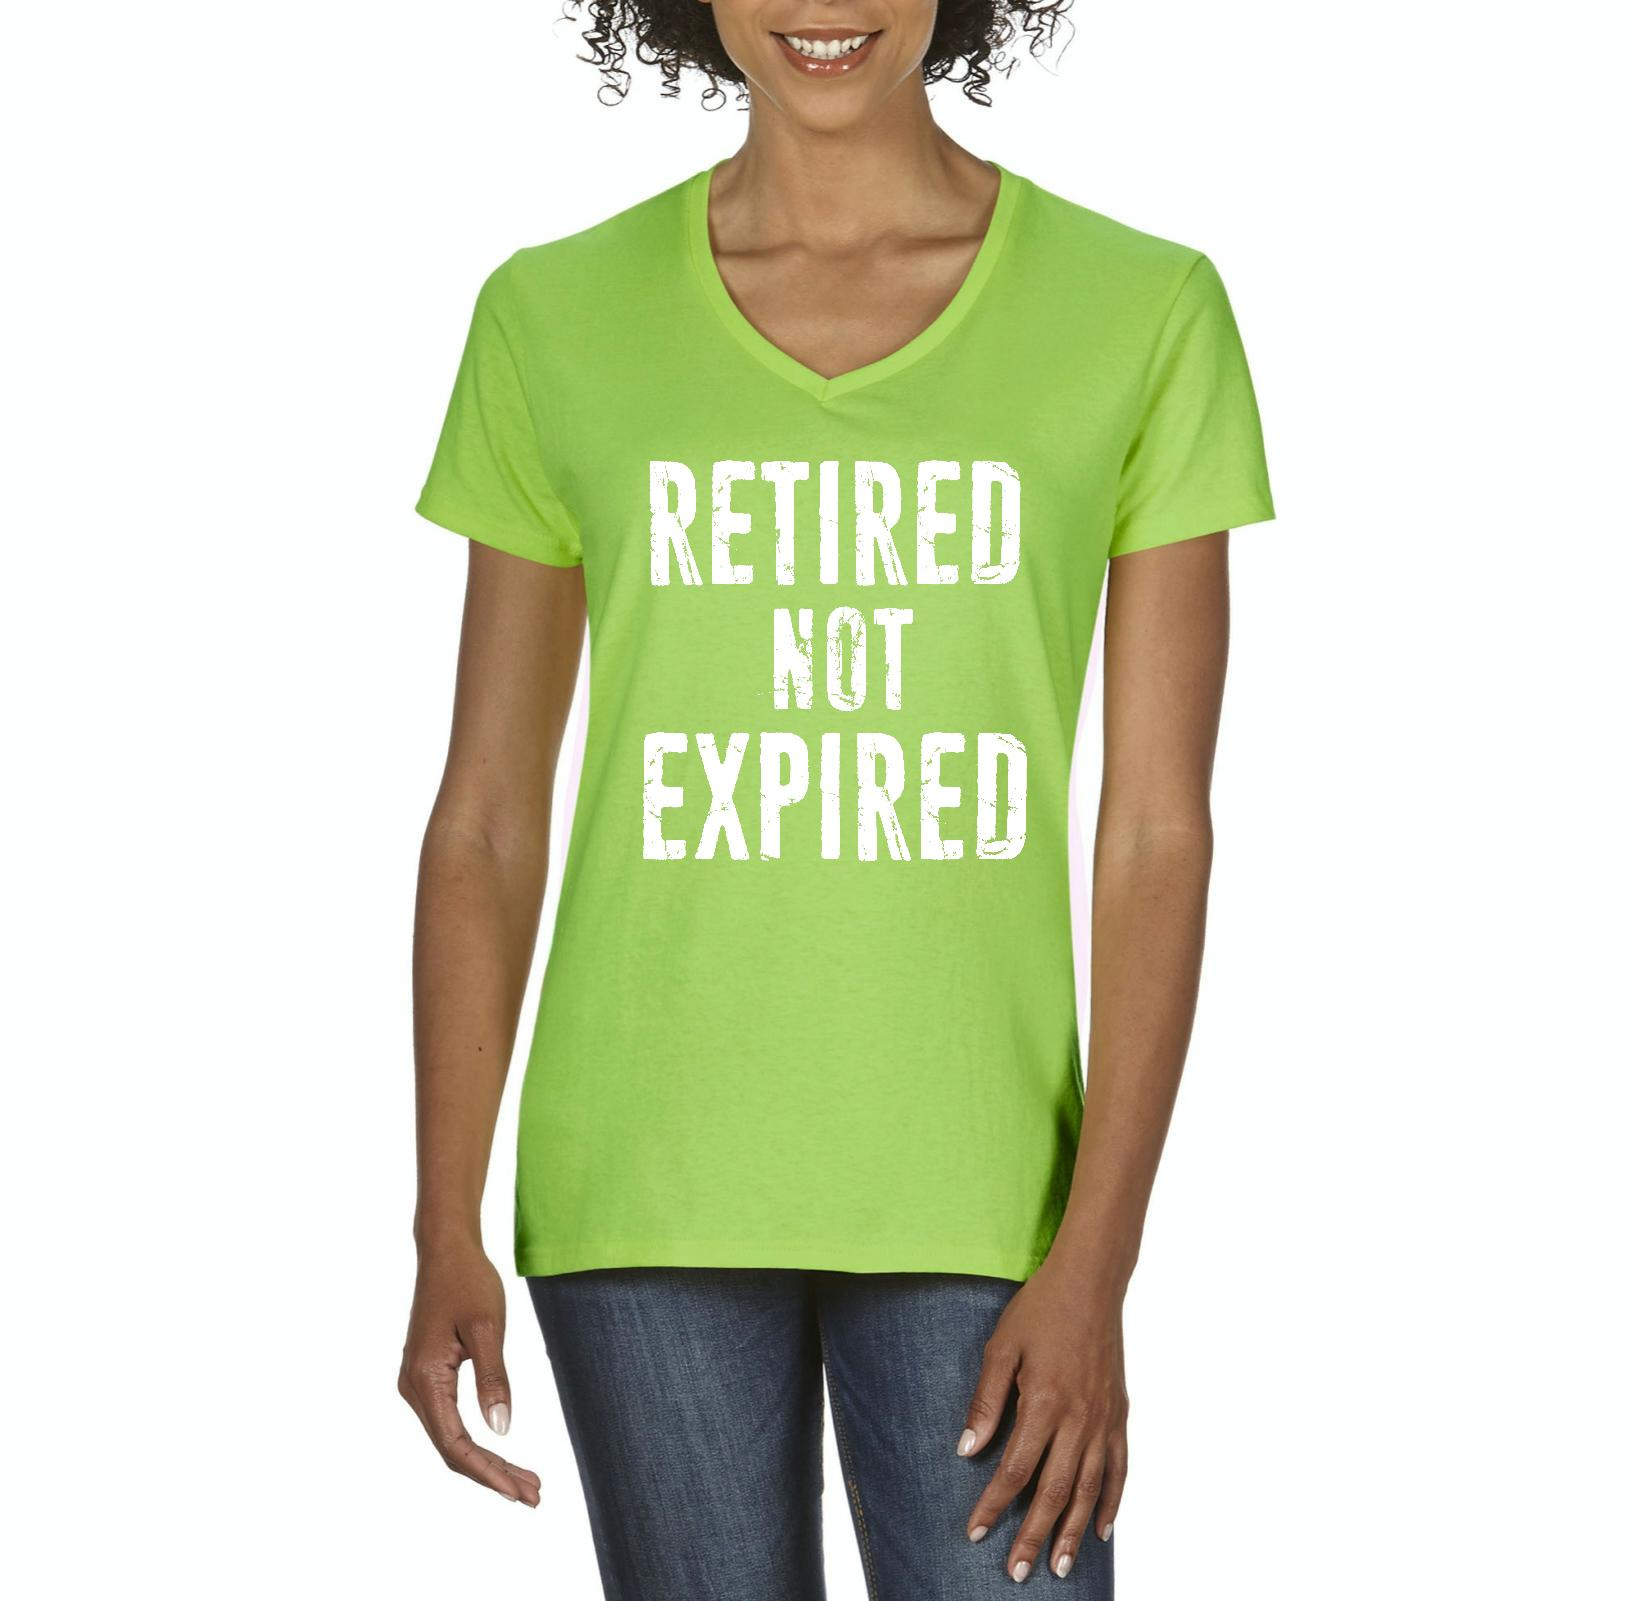 Funny T-Shirt Retired Not Expired Funny Retirement Fathers Day Birthday Gift  Womens Shirts V-neck